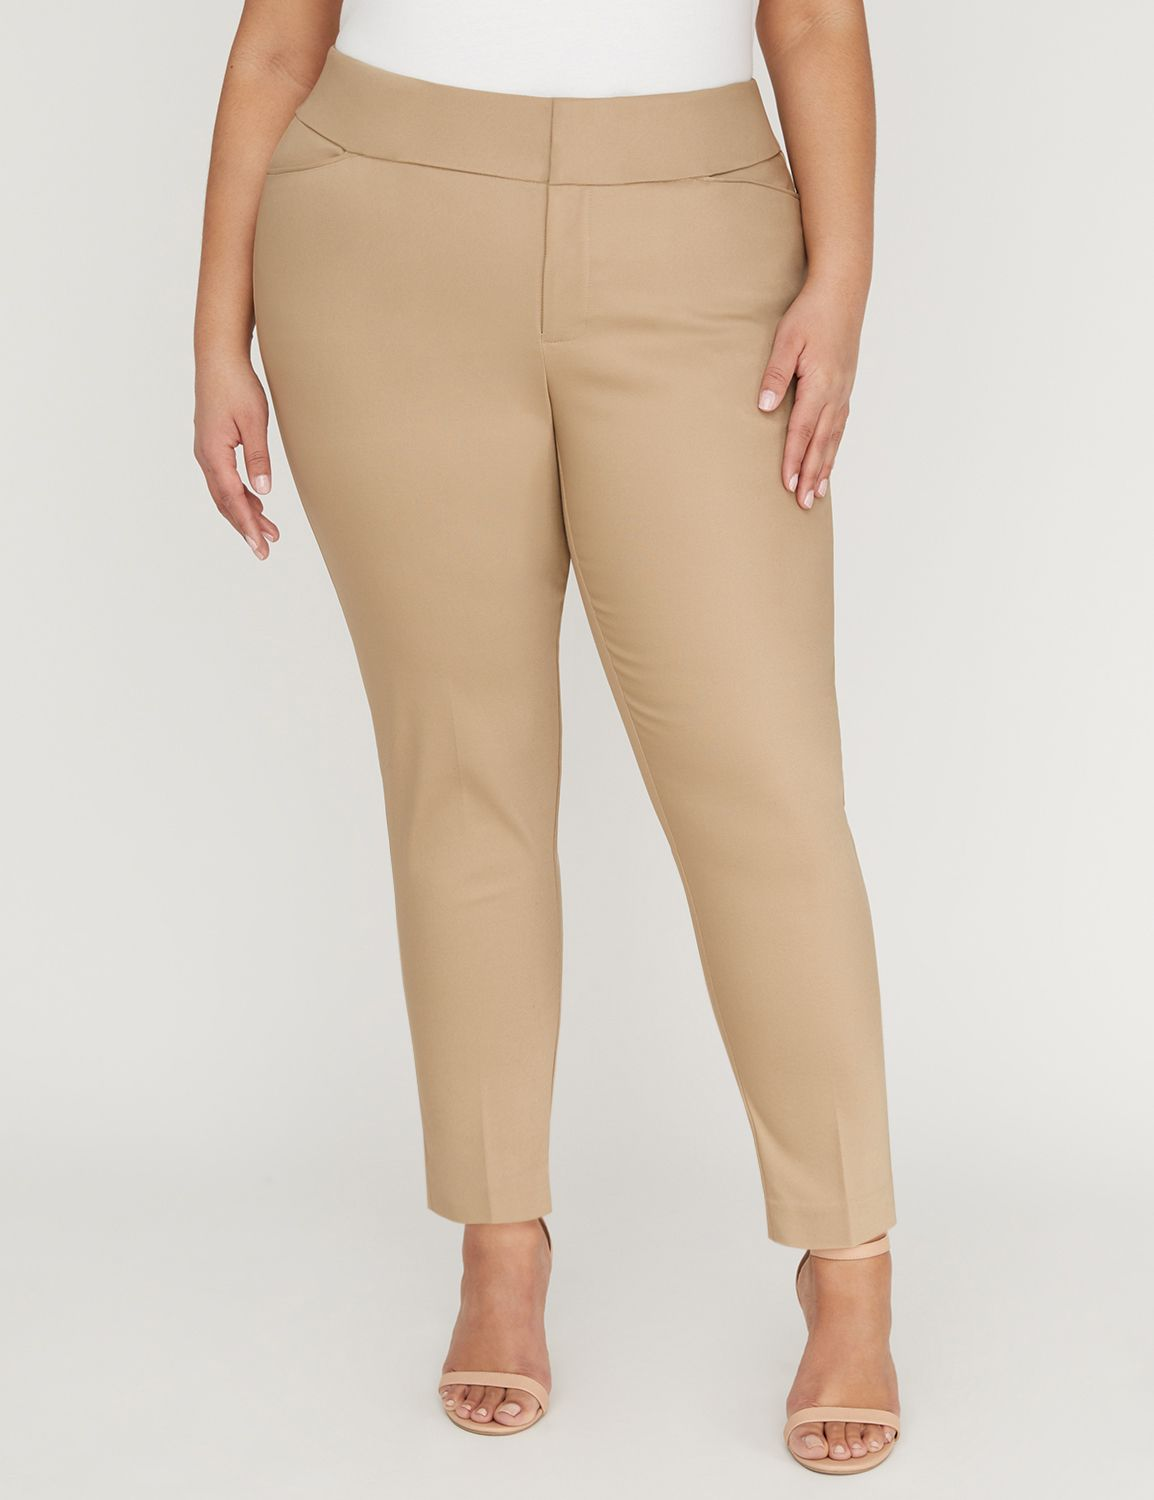 Updated Modern Stretch Ankle Pant 1087775 MODERN STRETCH WIDE WAISTBA MP-300097575